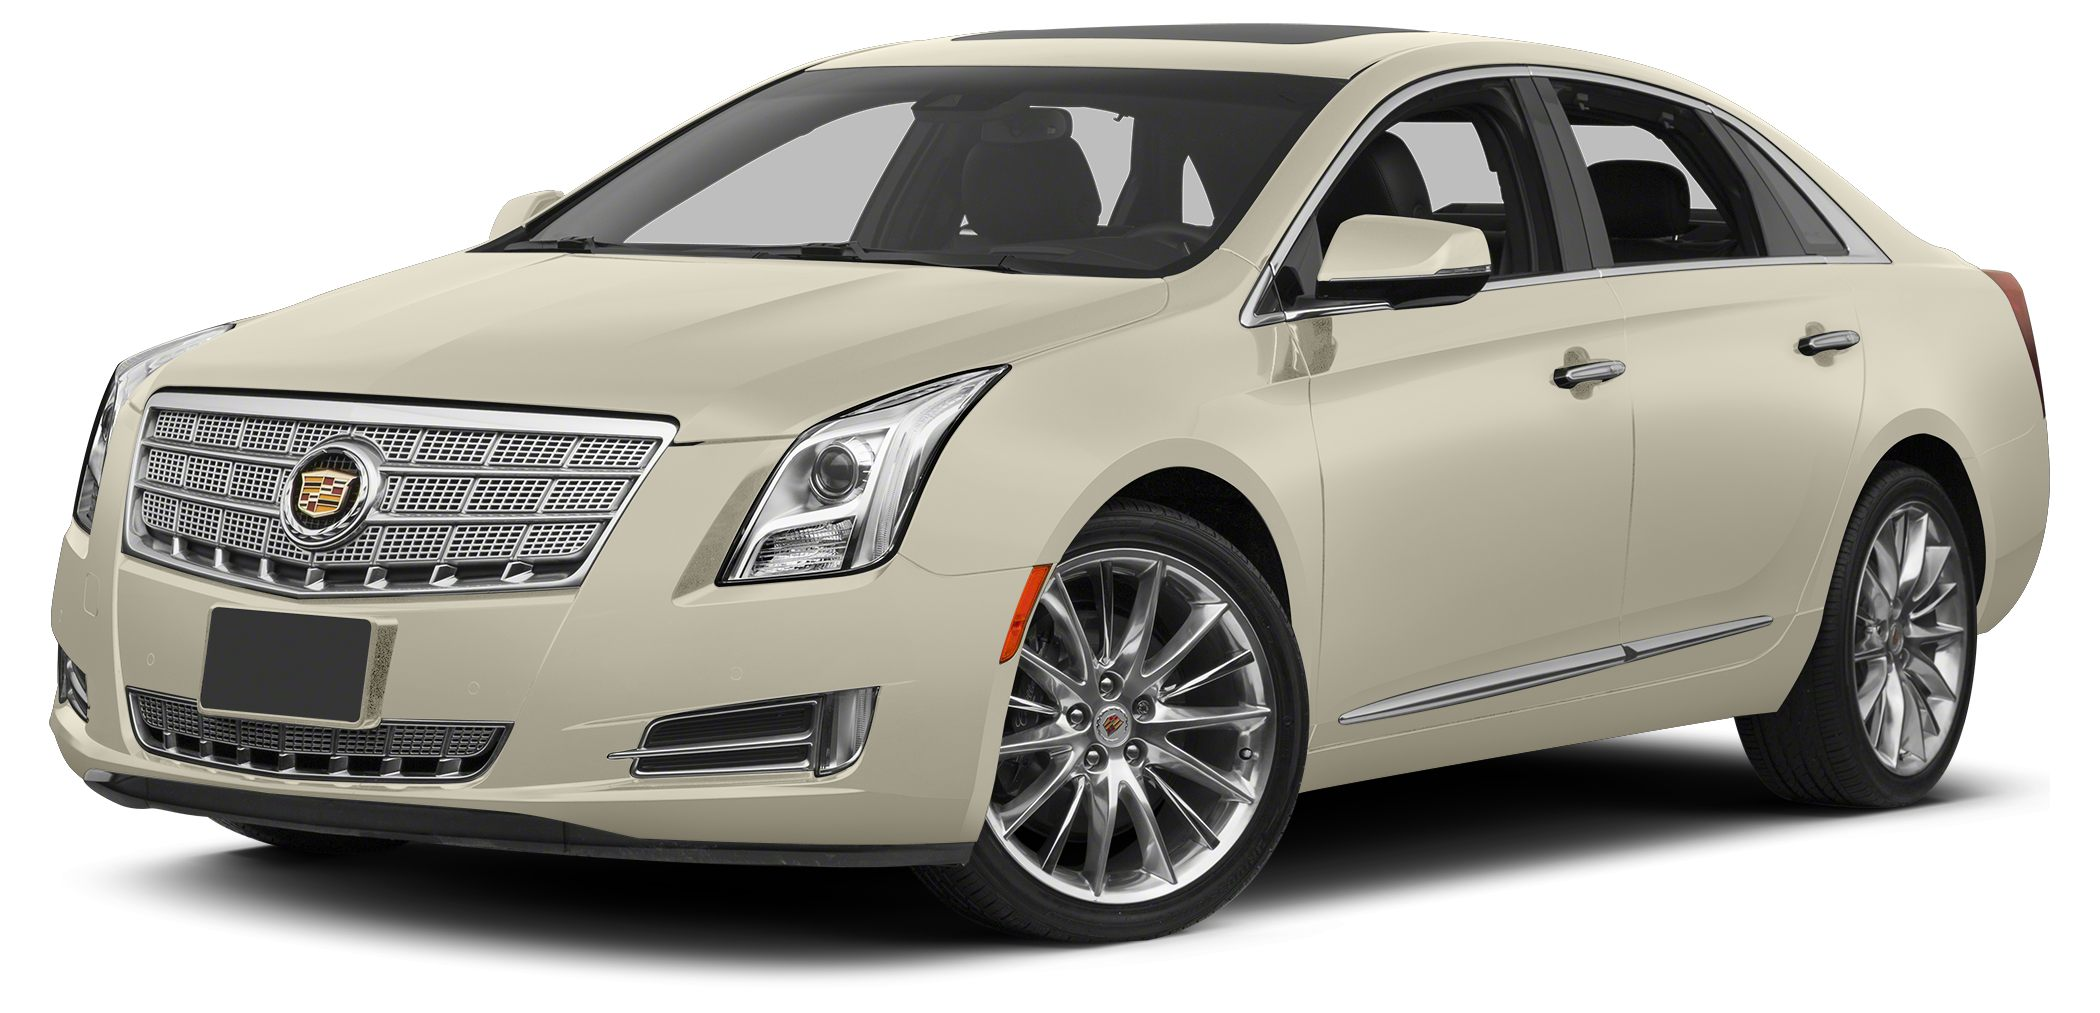 2013 Cadillac XTS Luxury DISCLAIMER We are excited to offer this vehicle to you but it is current